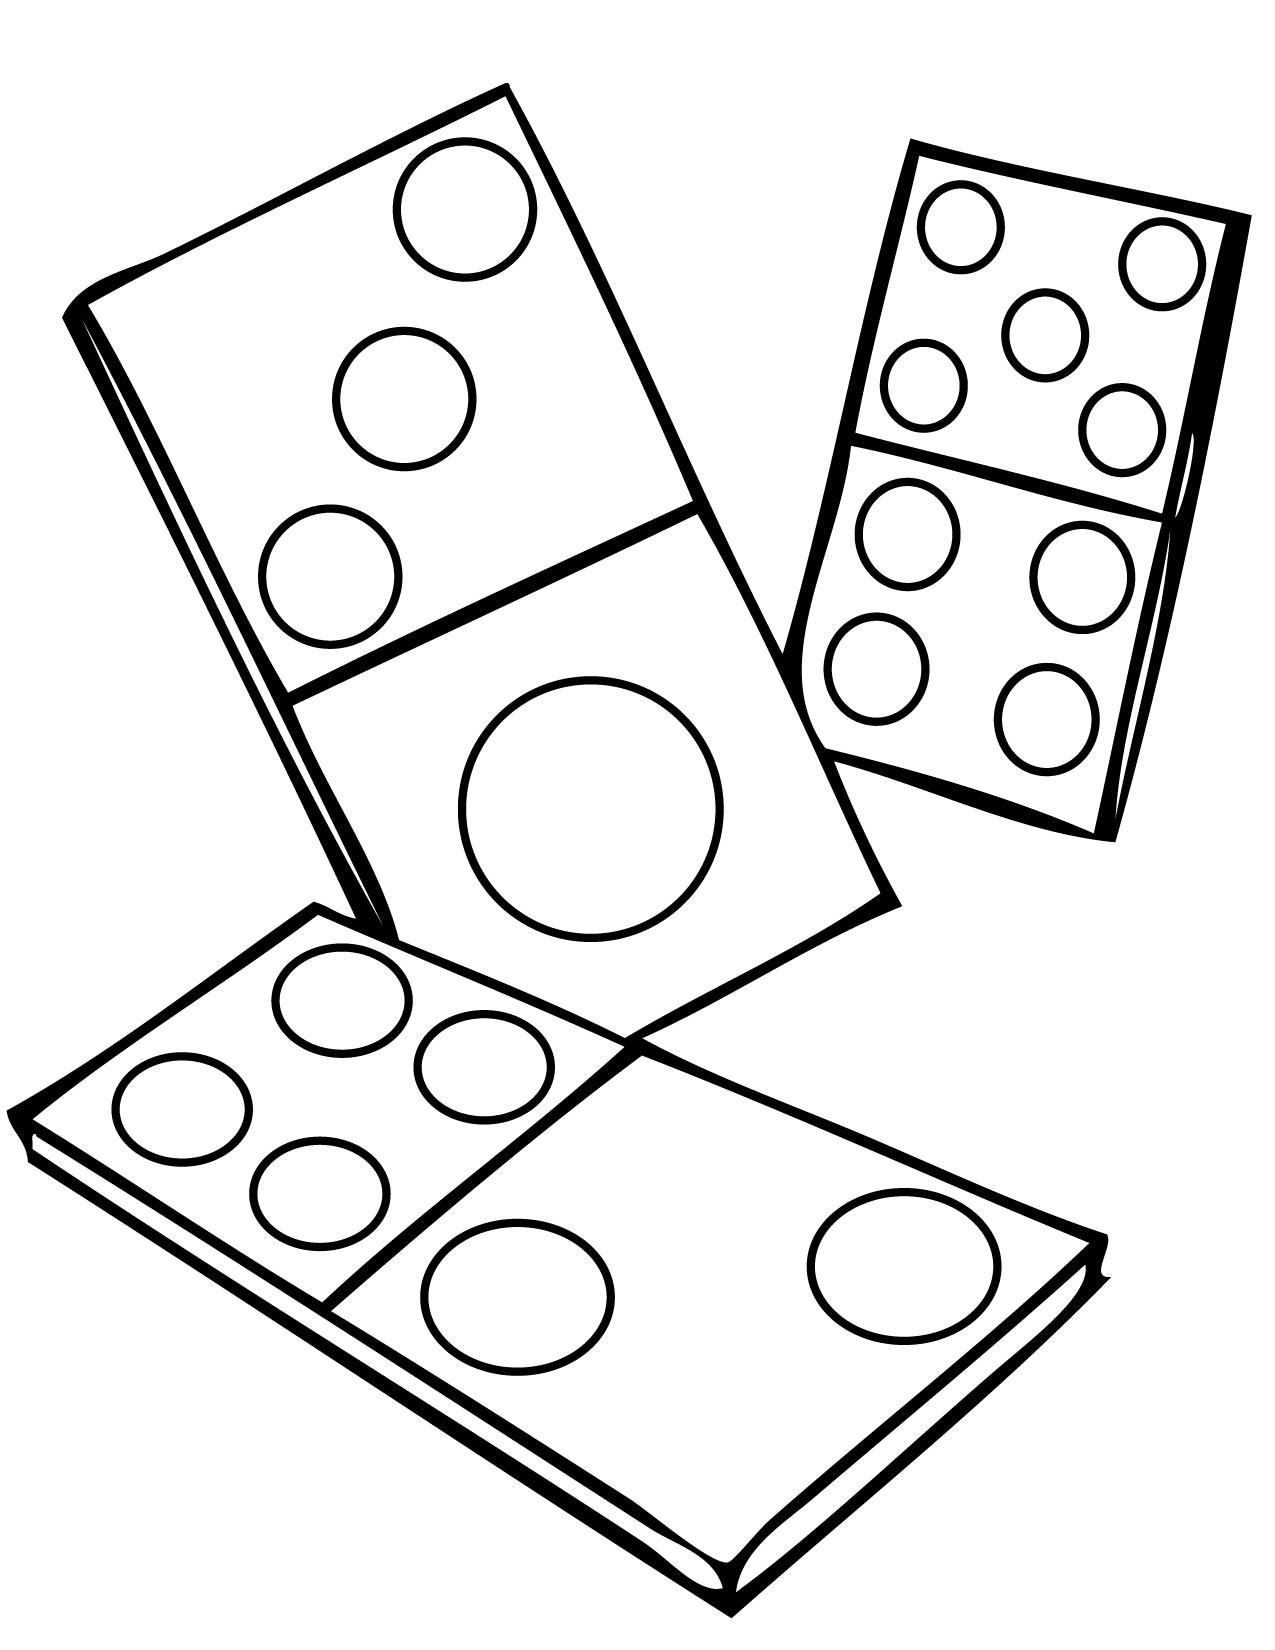 1275x1650 Tic Tac Toe Coloring Page Handipoints For Pages Games Auto Market